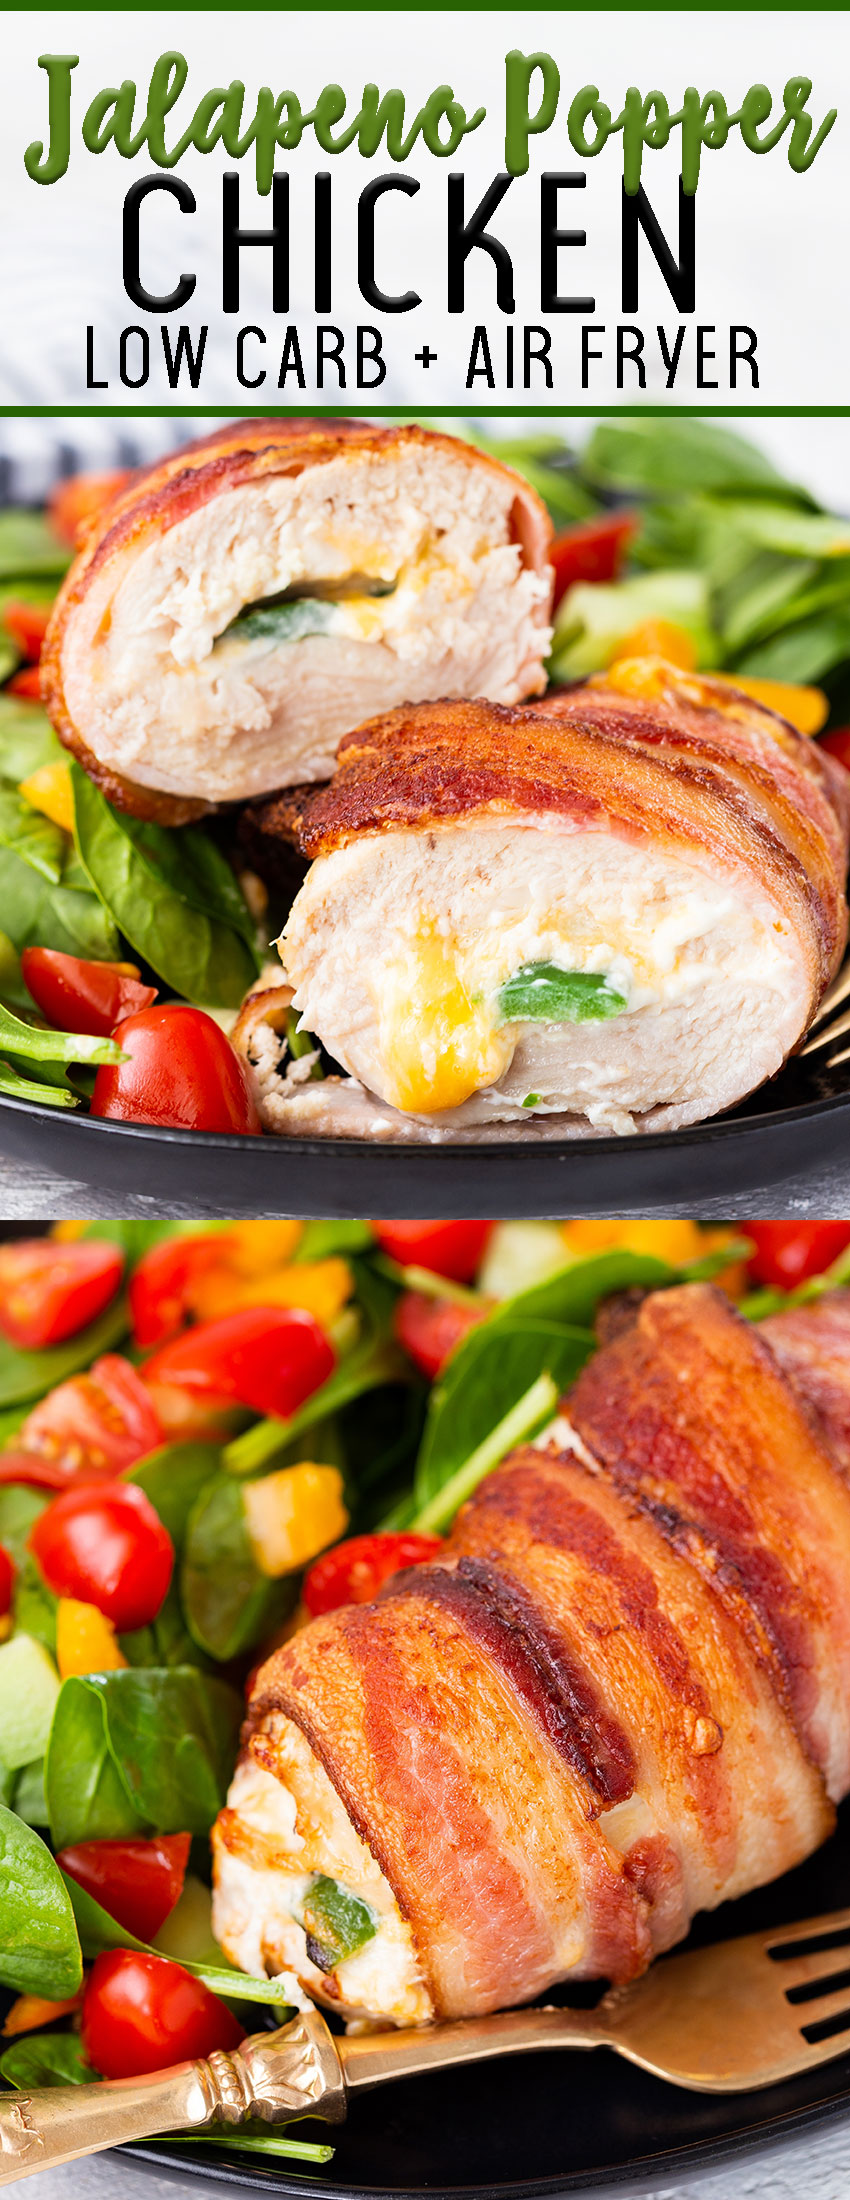 Air fryer jalapeno popper stuffed chicken low carb and keto, a delicious and easy to make chicken dinner